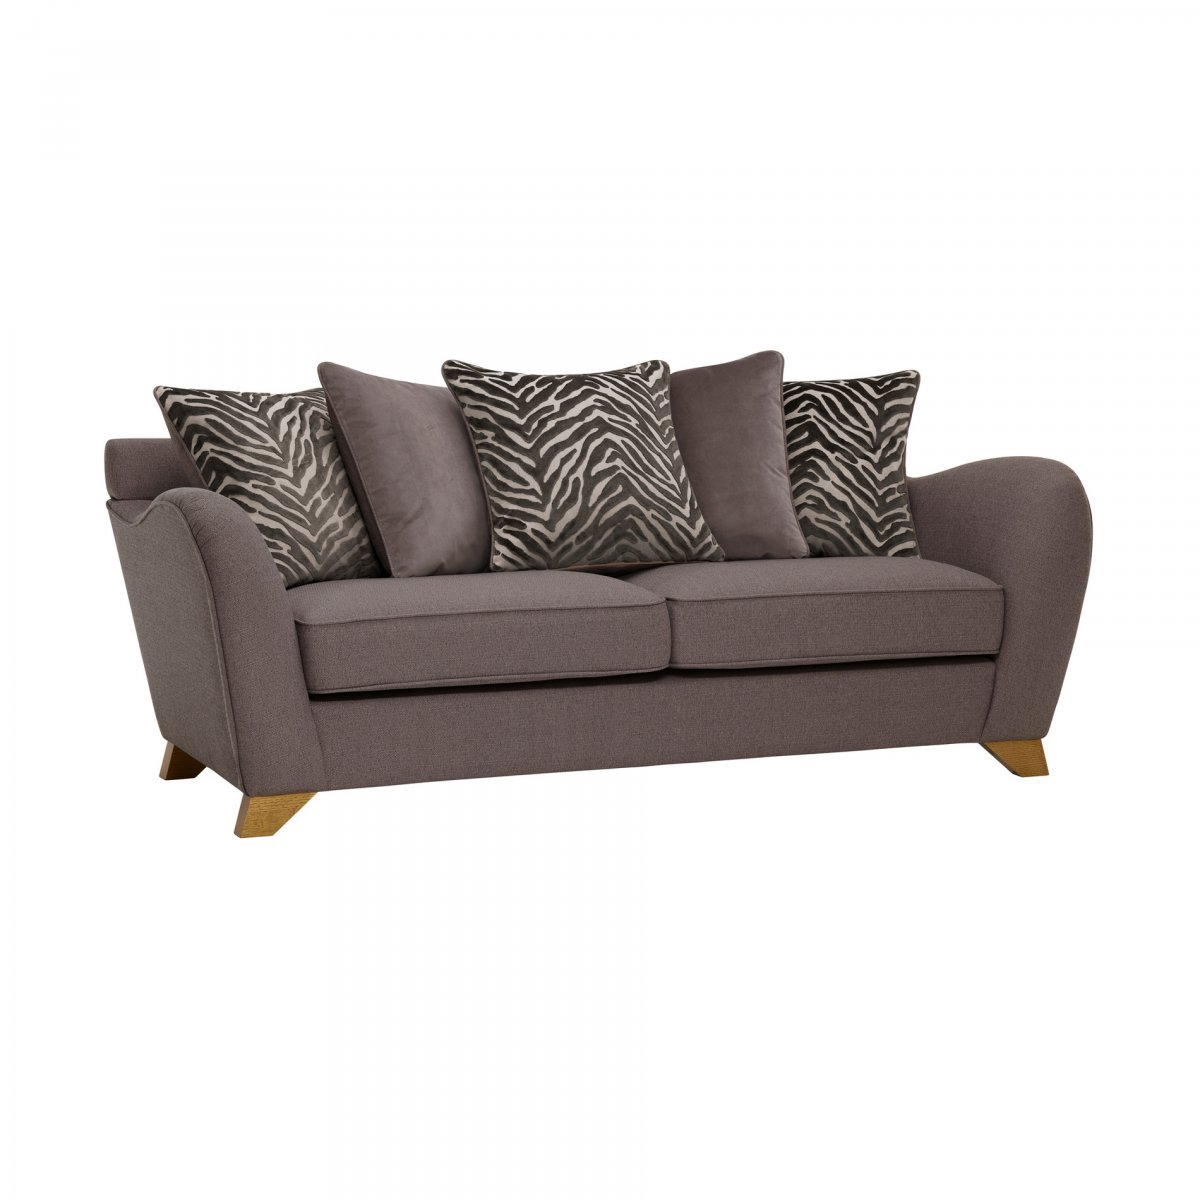 Pillows Traditional Sofa: Abbey Traditional Pillow Back 3 Seater Fabric Sofa